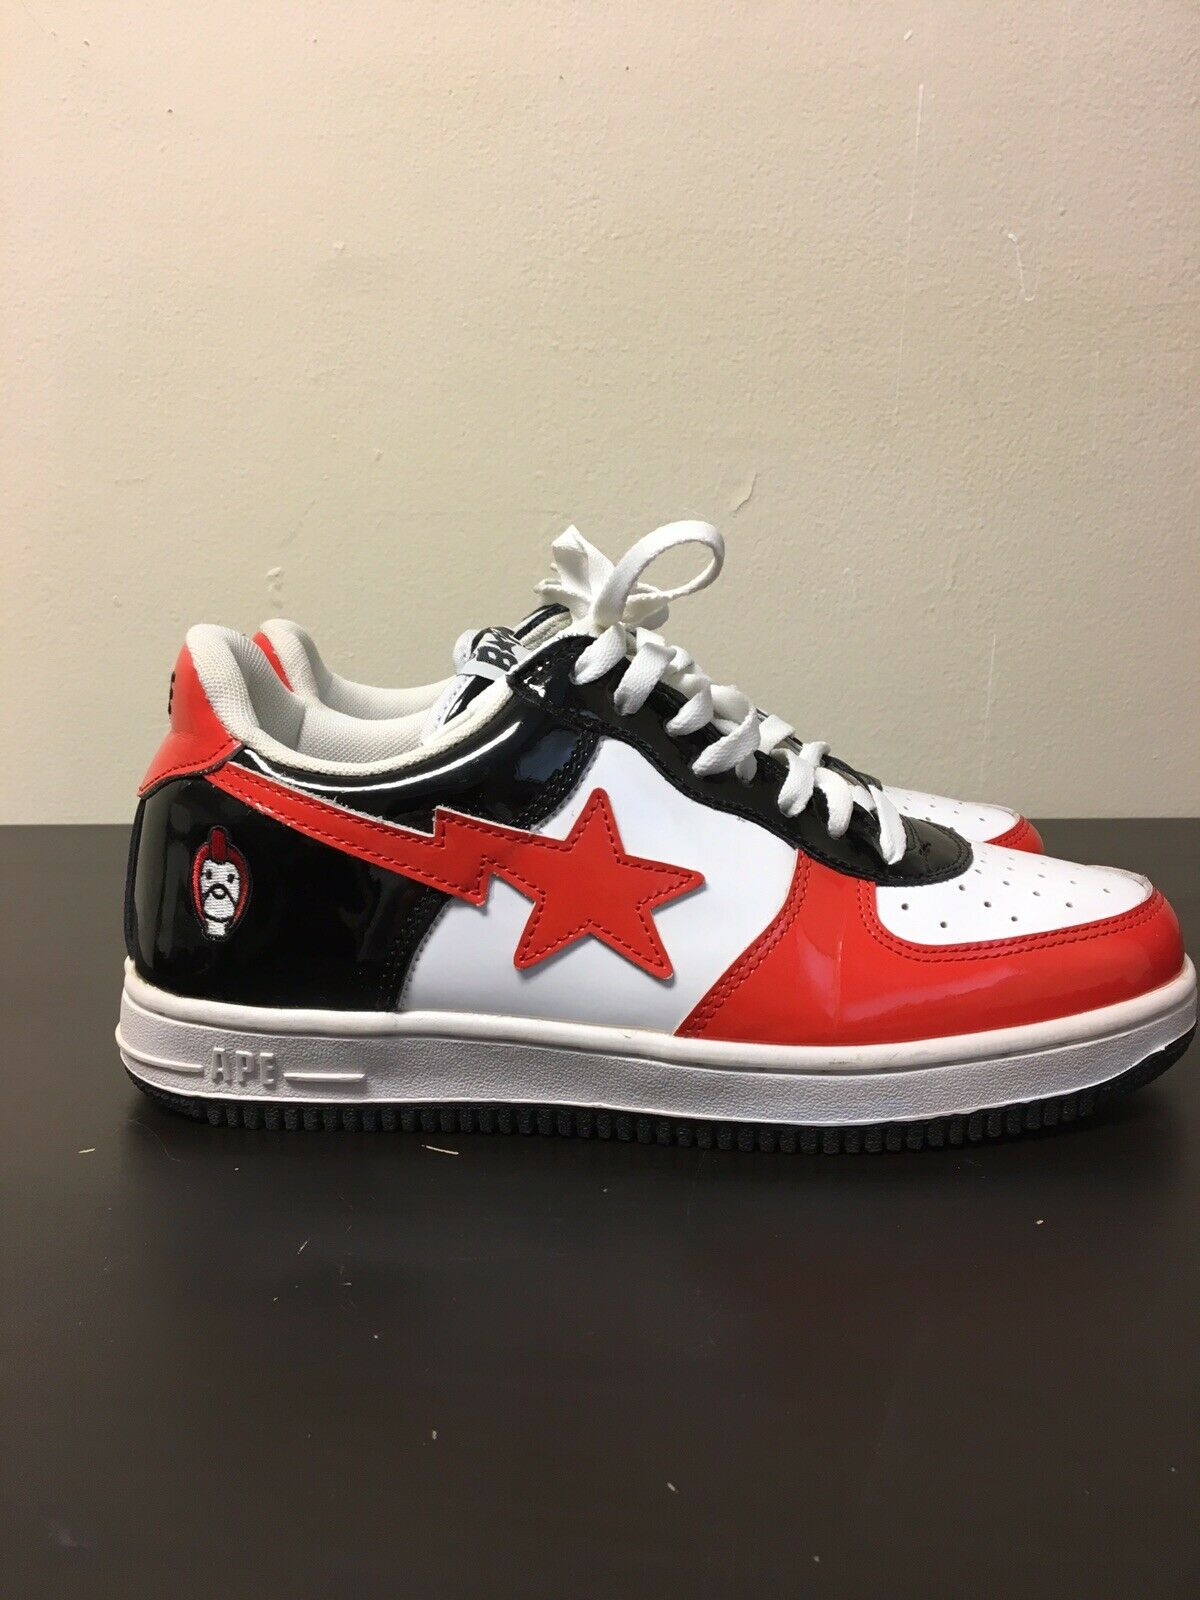 Un Bathing Ape Bapesta Milo Sz 10.5 0612 FS 001 General